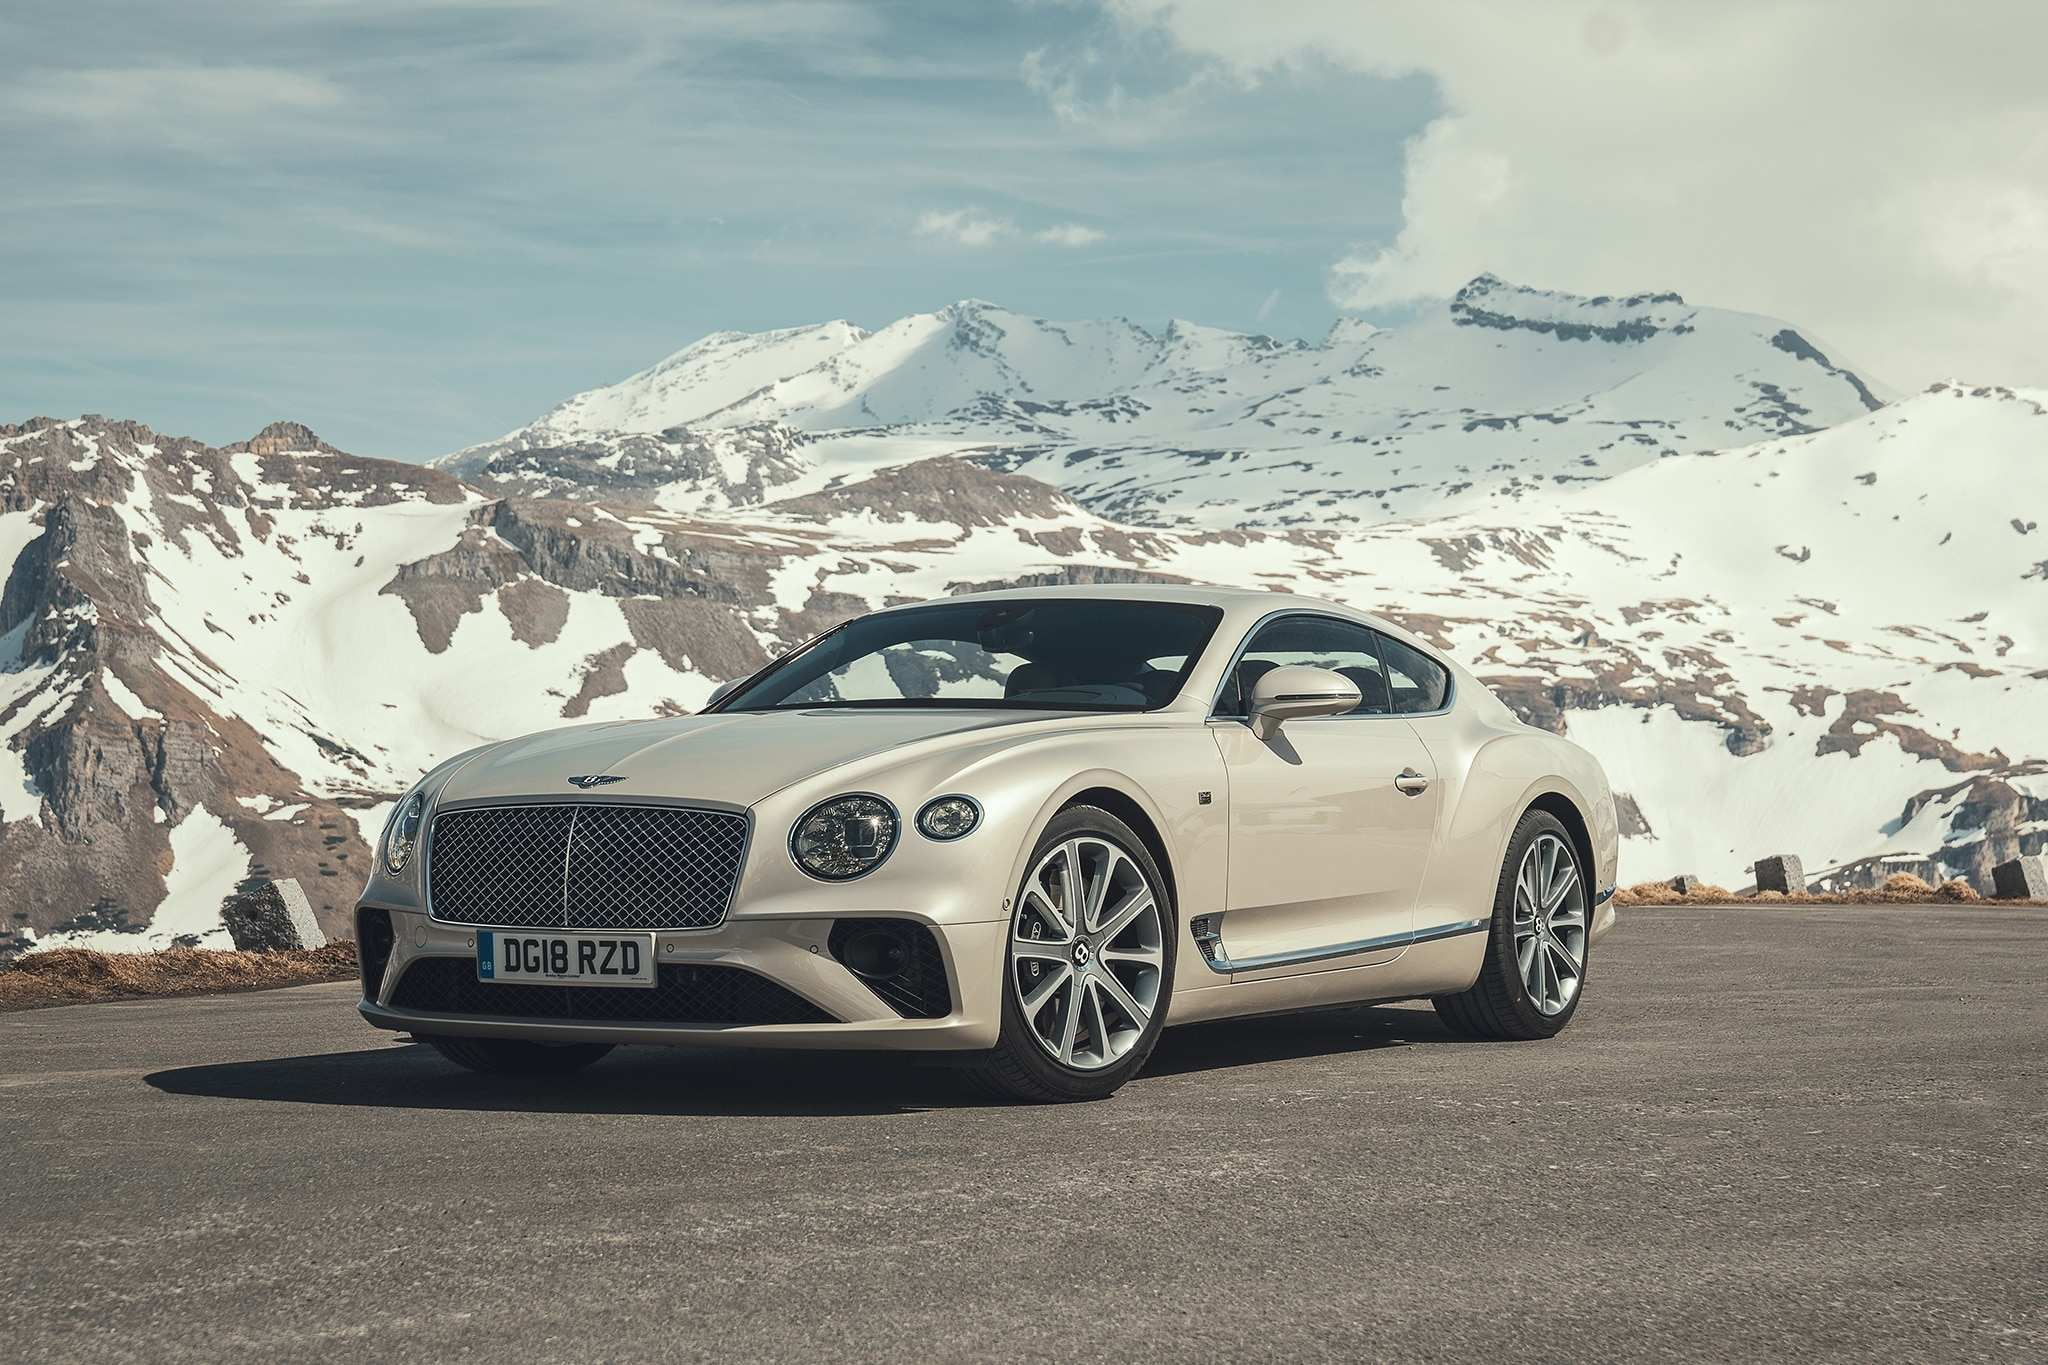 70 Best Review 2019 Bentley Continental Gt Release Date Exterior and Interior by 2019 Bentley Continental Gt Release Date